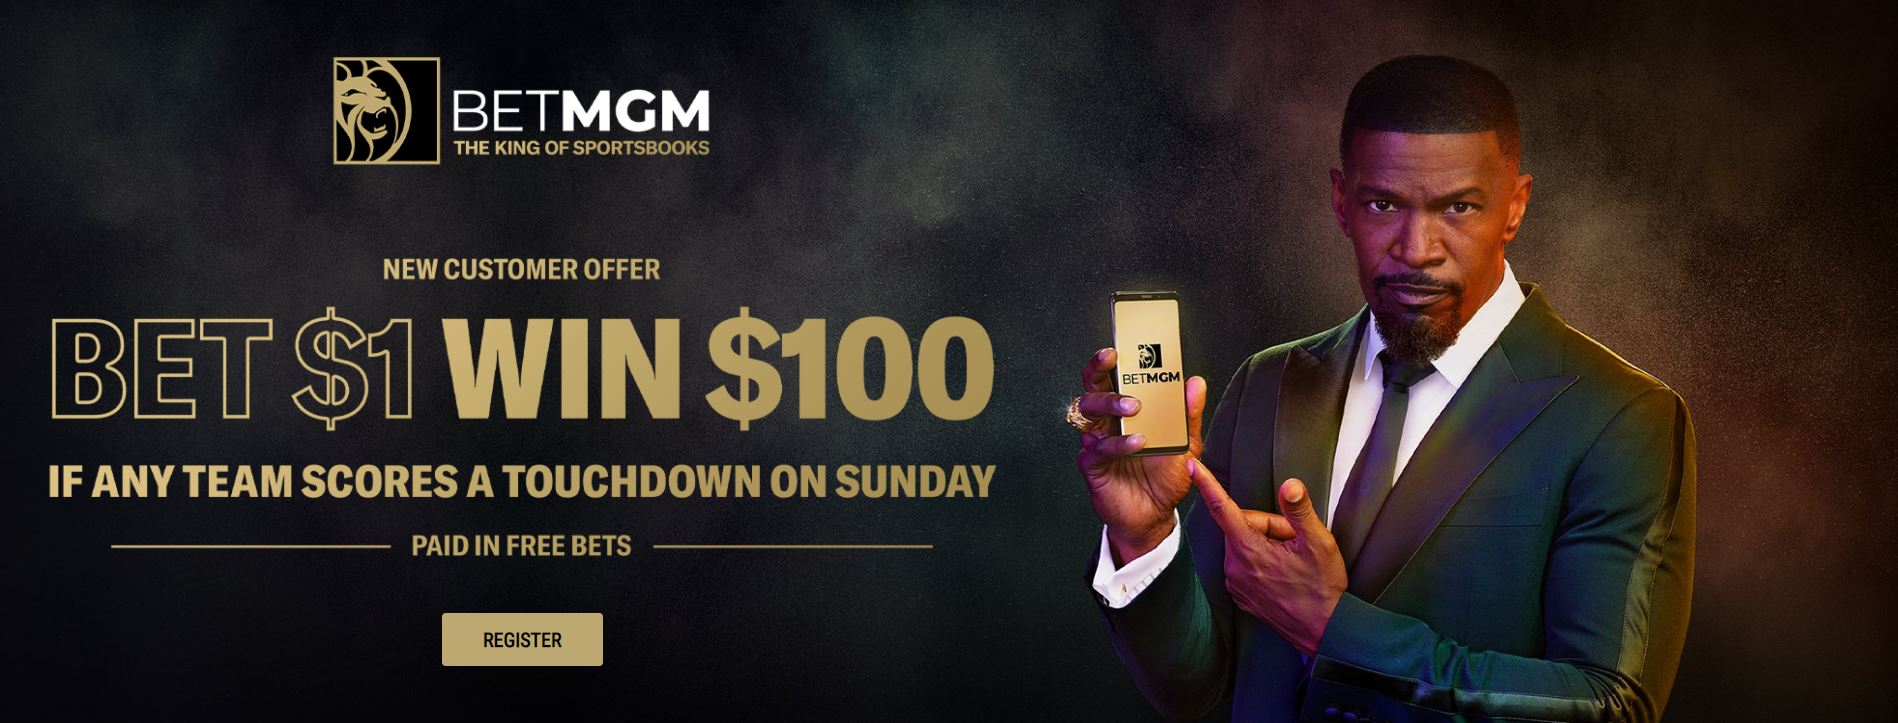 """Bet $1 win $100, new customer offer for the Sunday games as part of the Jamie Foxx """"The King of Sportsbooks"""" campaign"""